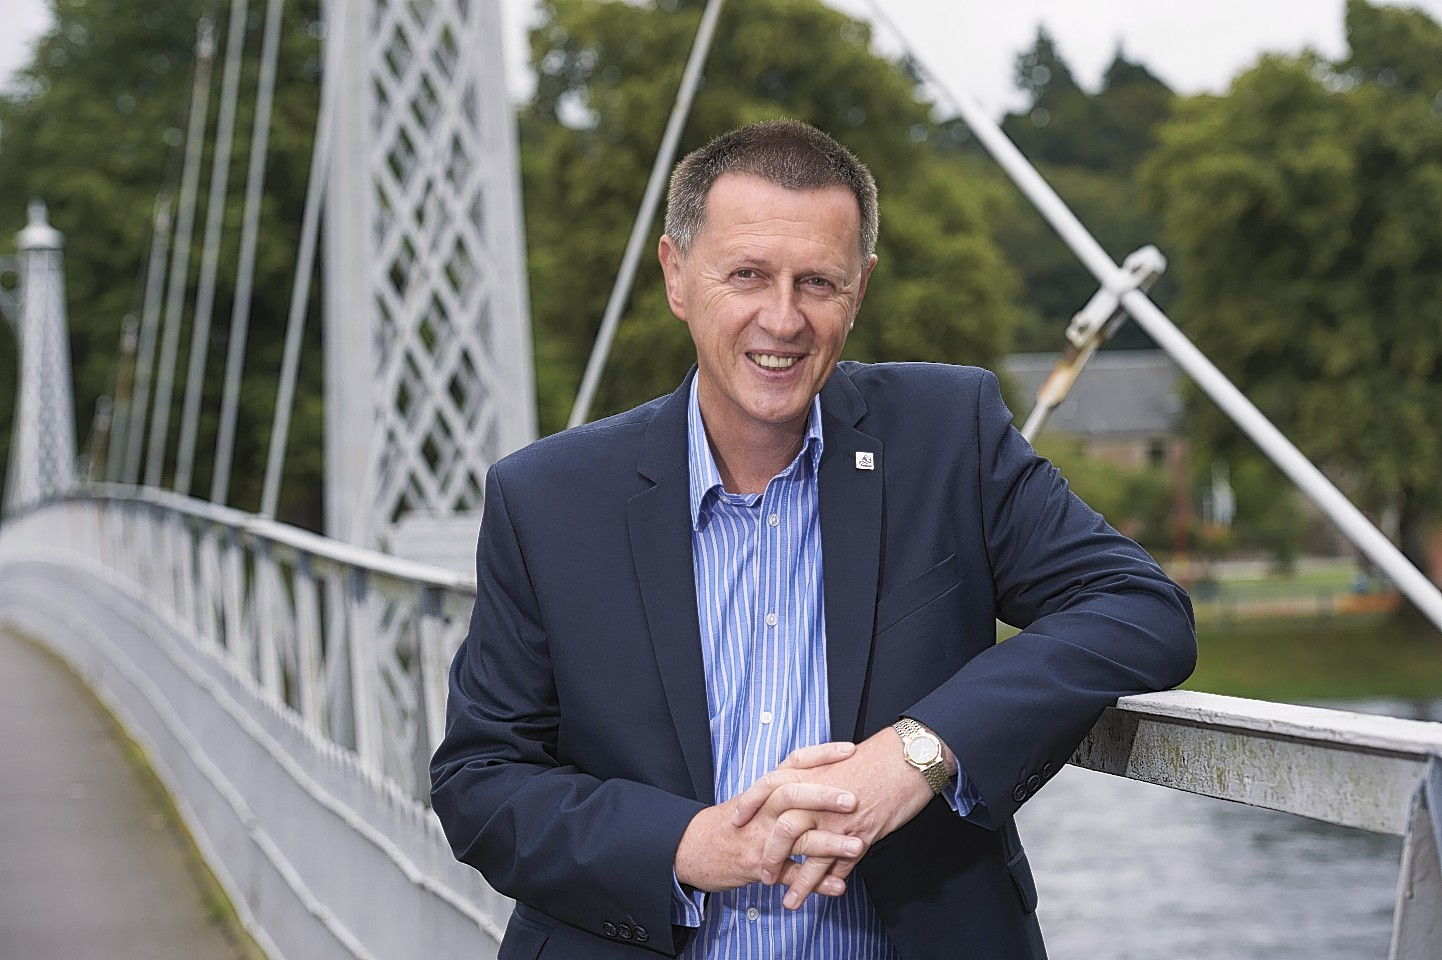 Clive Mulholland, Principal and Vice Chancellor of UHI